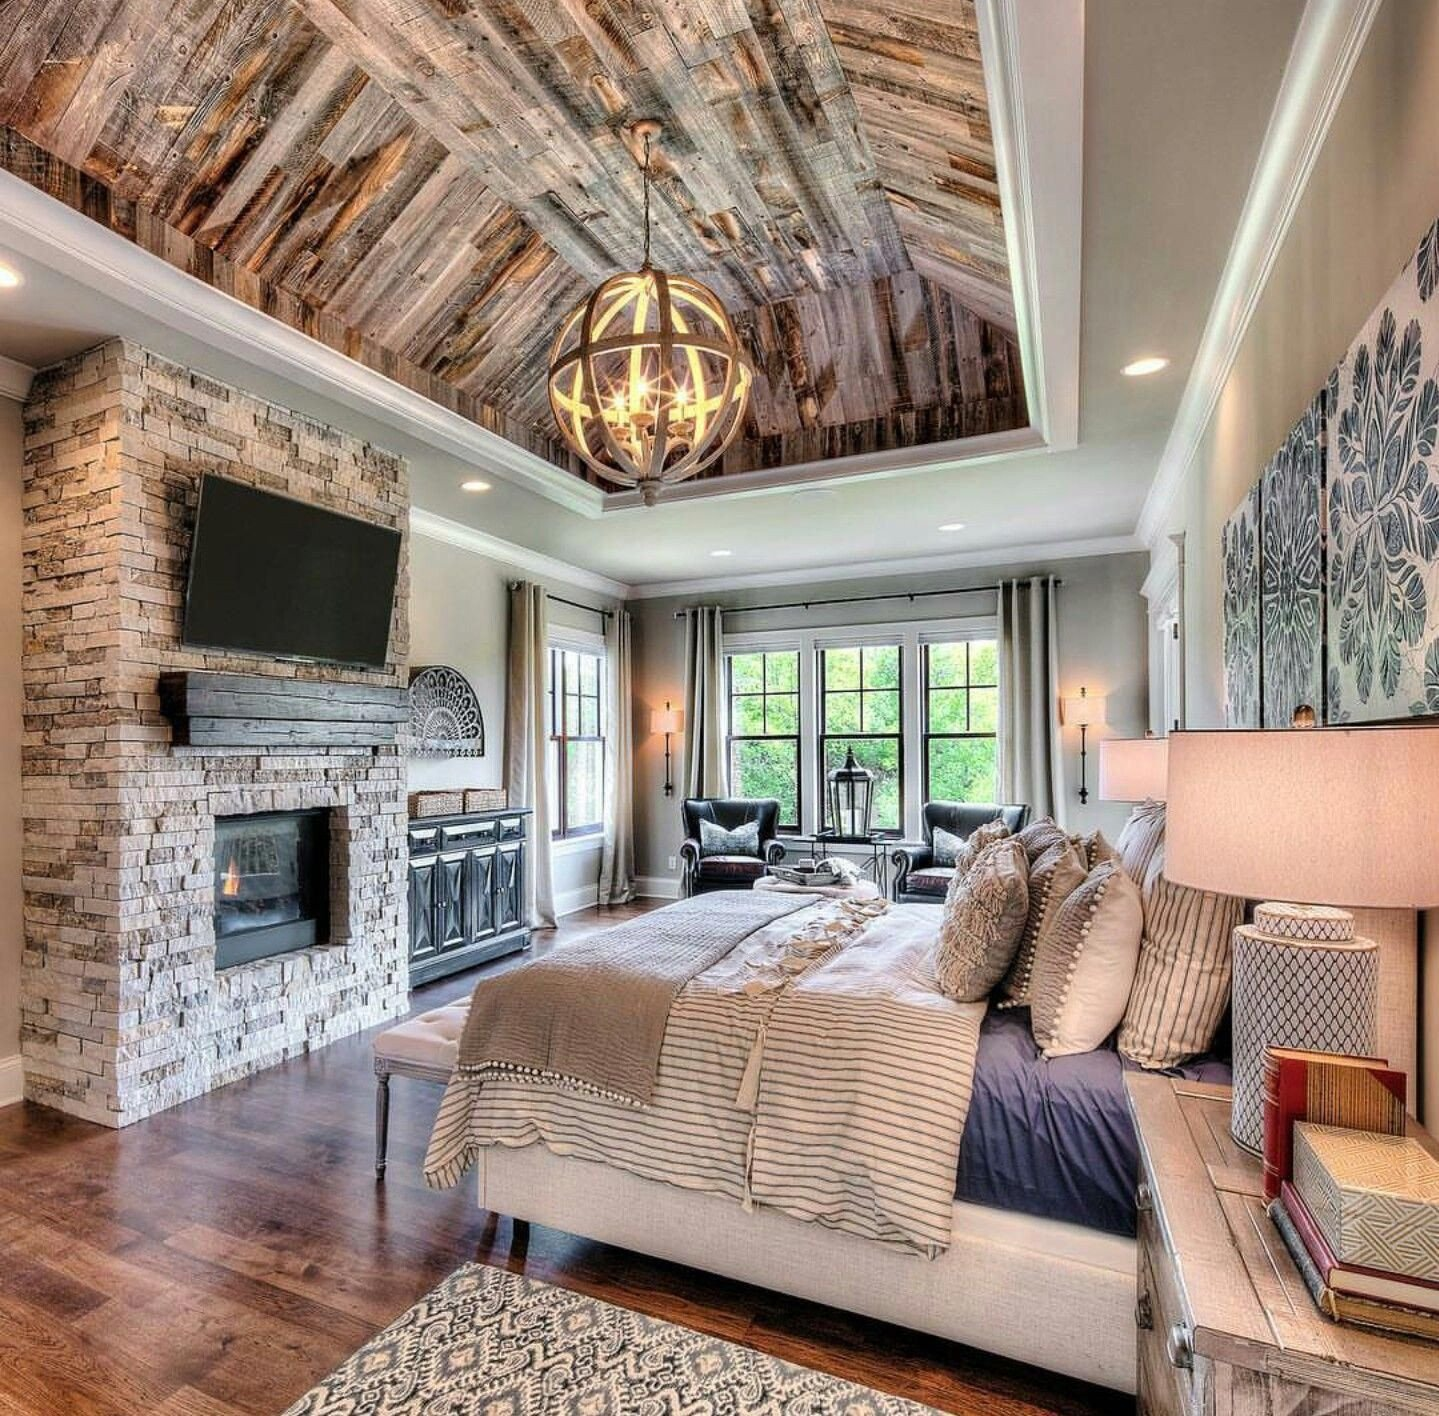 Master Bedroom with Fireplace Awesome Great Mix Of Rustic and Luxury In This Starr Homes Master